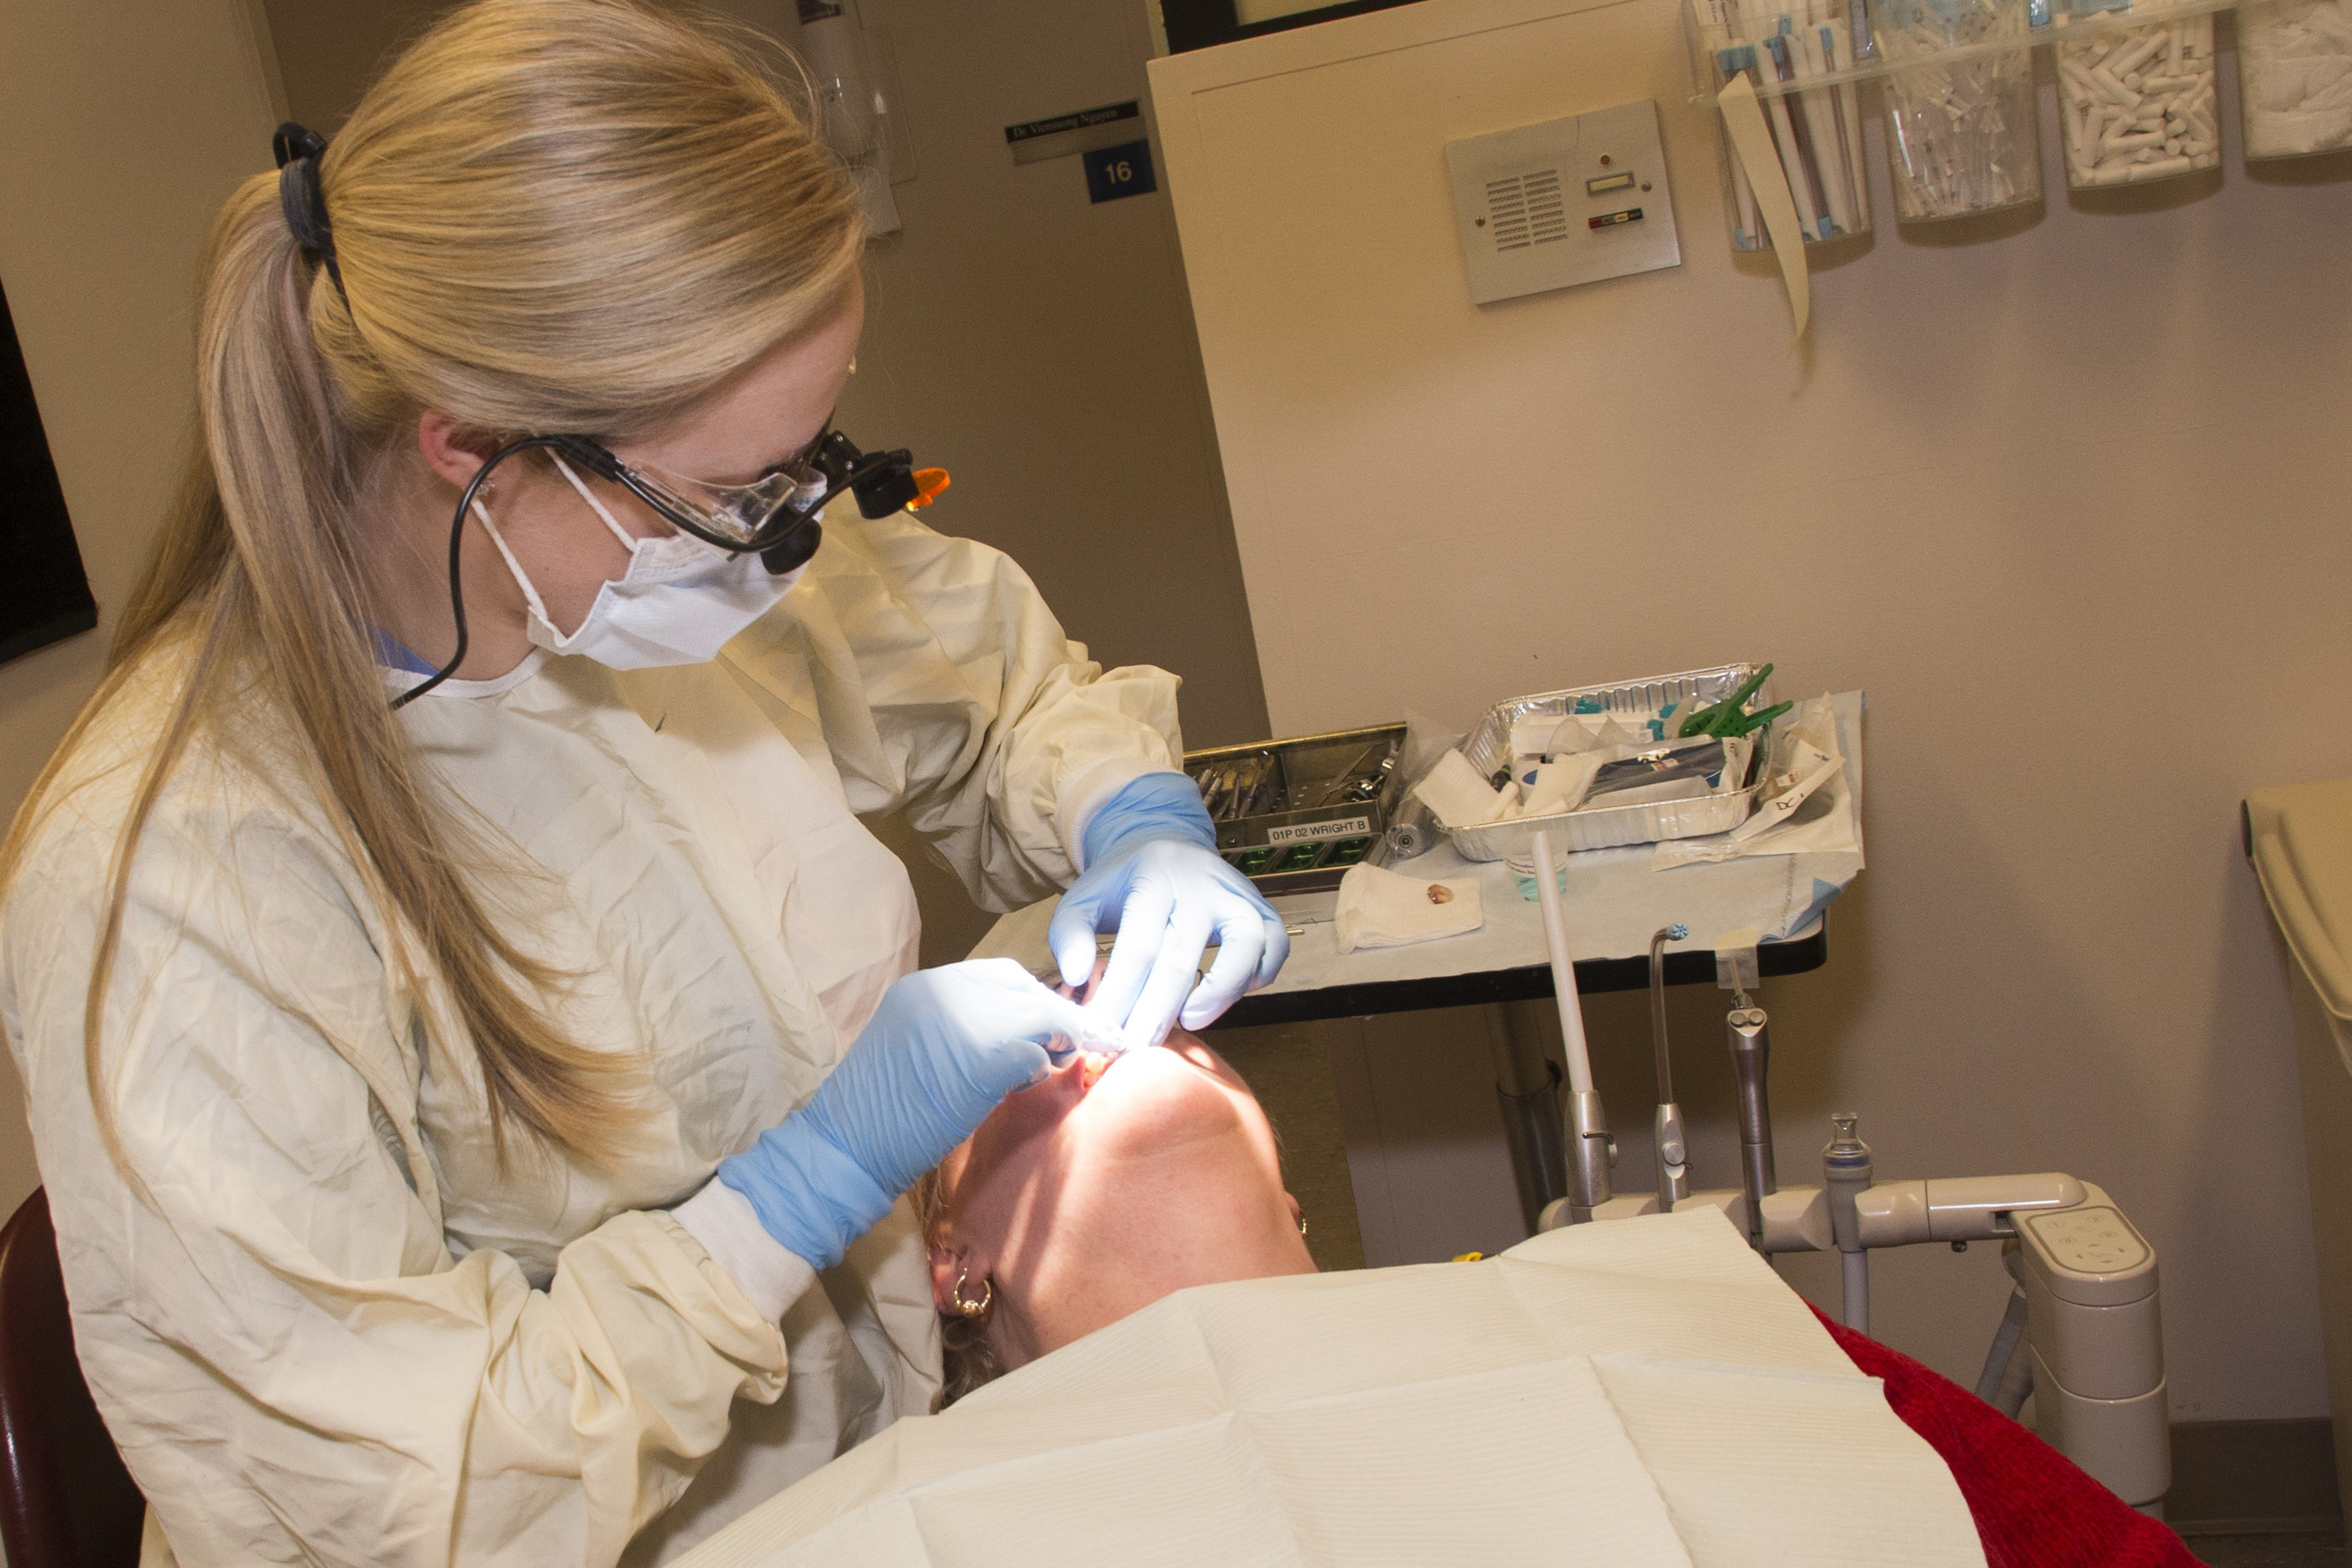 Dental resident Roberta Wright tends to a patient. (Janine Gelineau/UConn Health Photo)